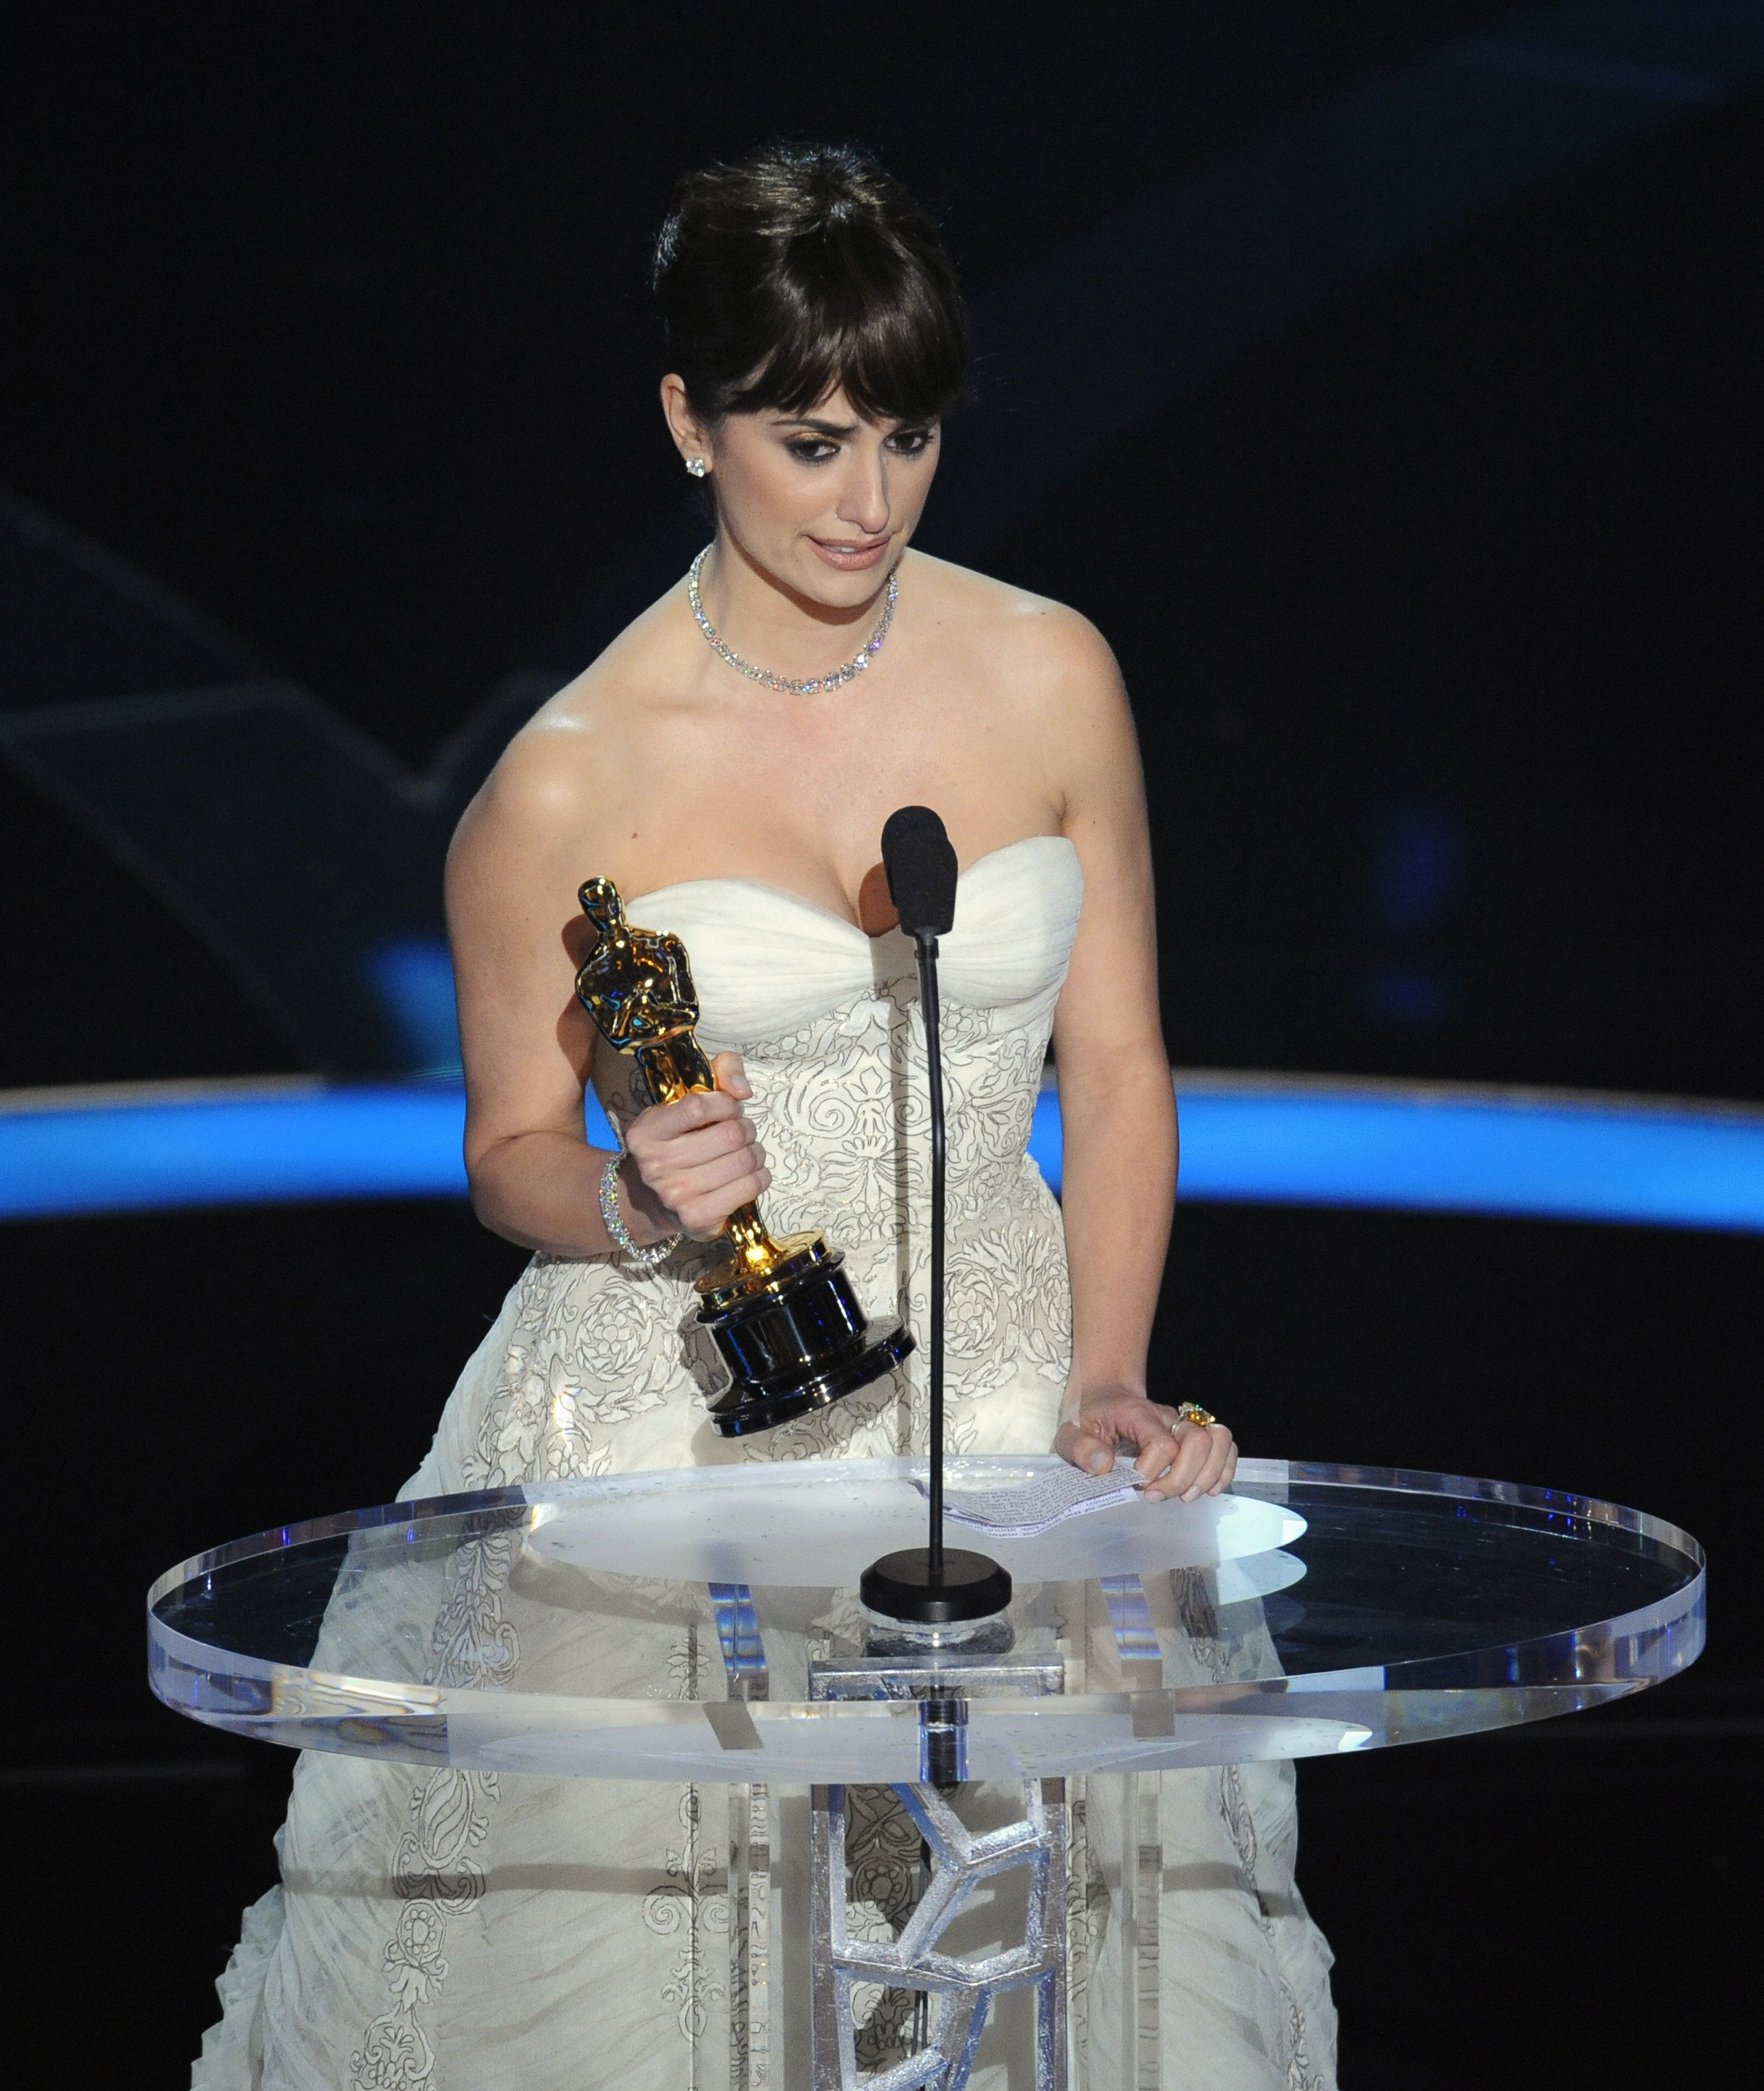 54799_Celebutopia-Penelope_Cruz_accepts_the_Oscar_for_best_supporting_actress_for_Vicky_Cristina_Barcelona_during_the_81st_Academy_Awards-02_123_234lo.jpg